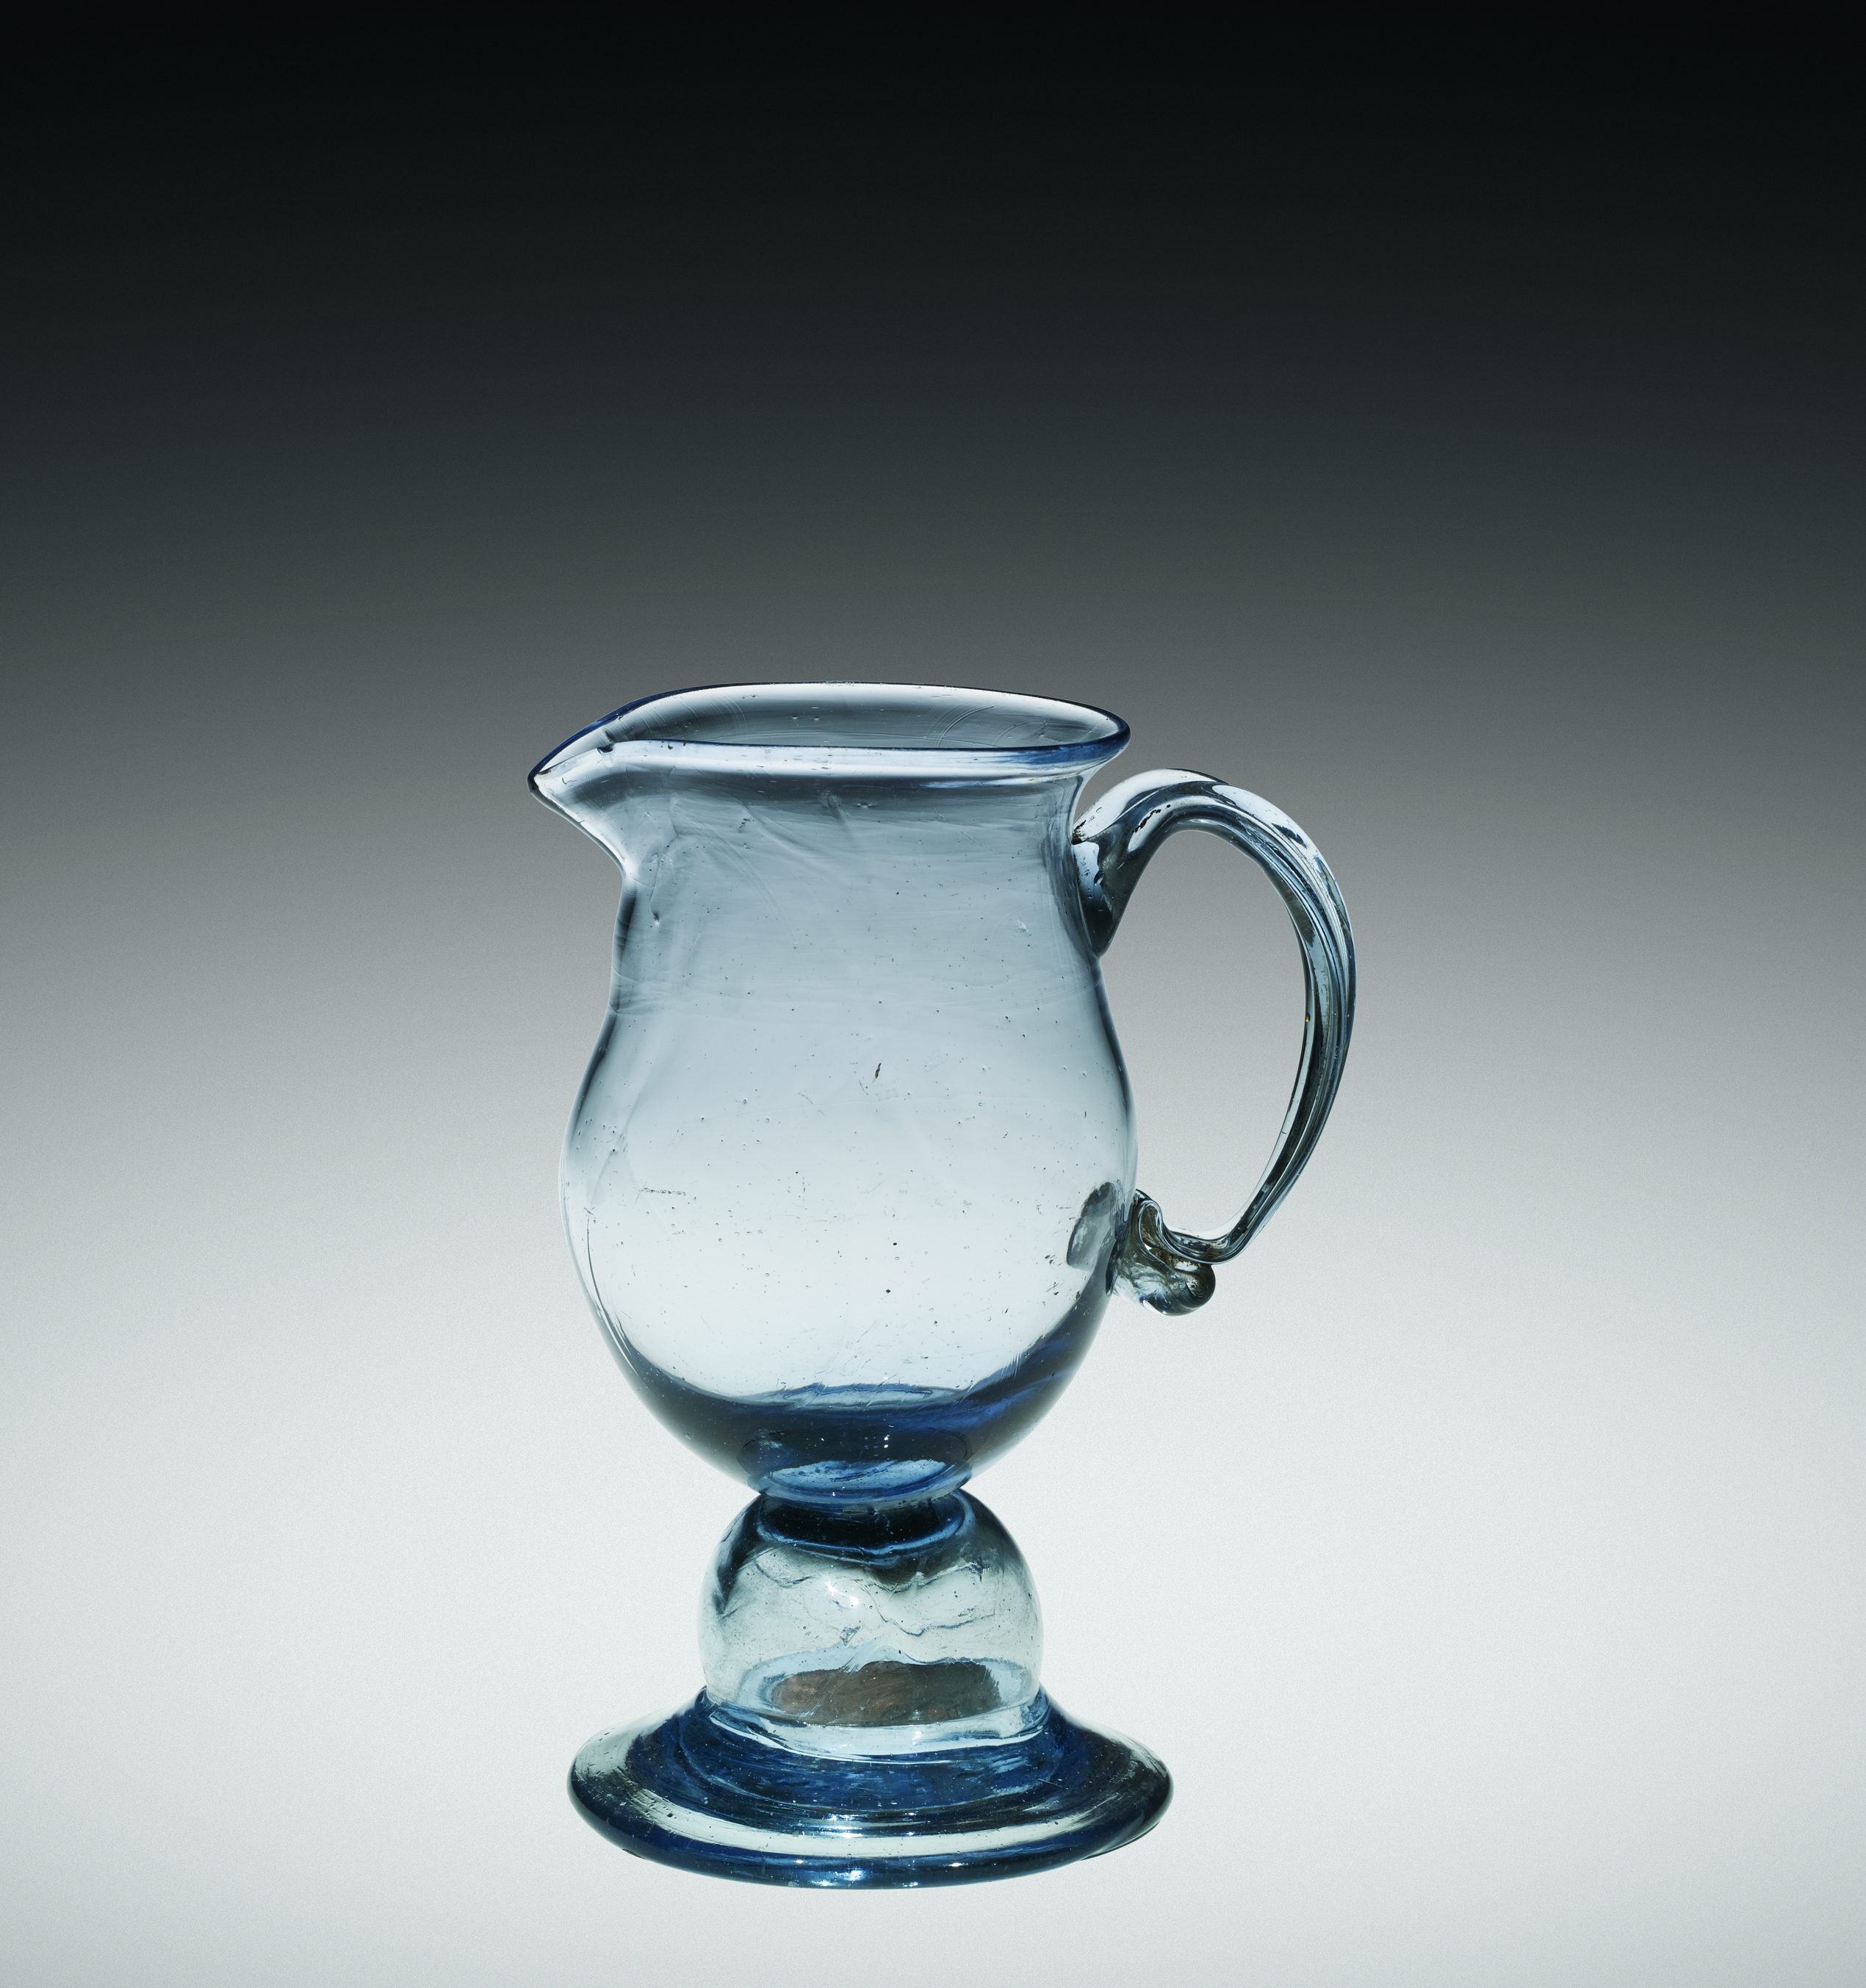 blue american glass creamer with a knop (hollow bubble in the stem) enclosing a 1794 U.S. cent coin